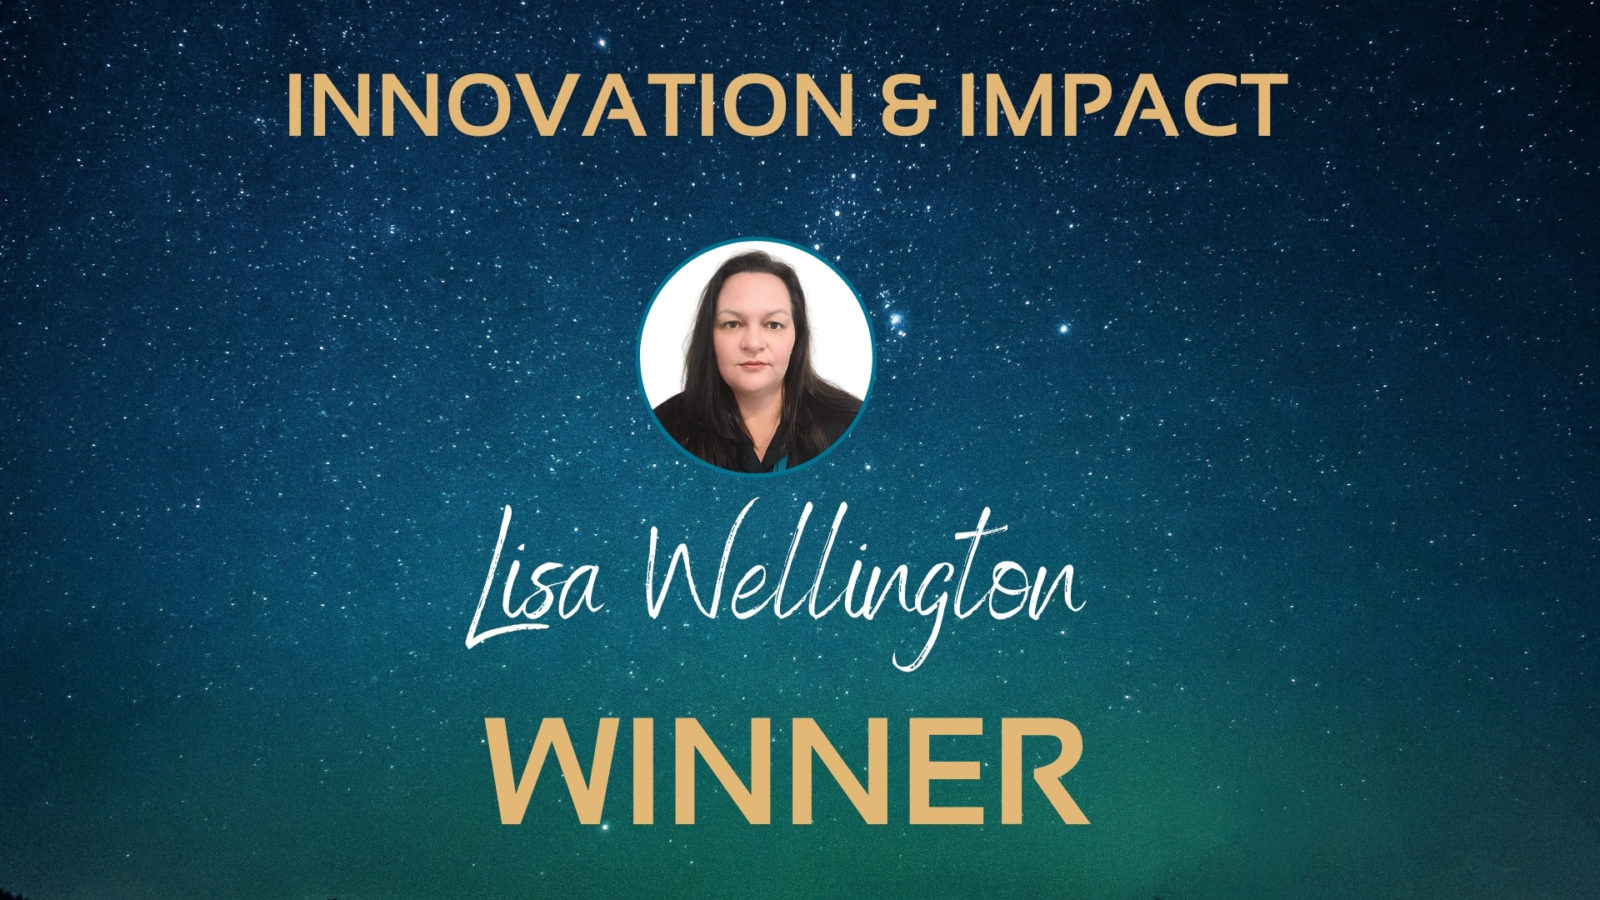 Lisa Wellington staff awards winner